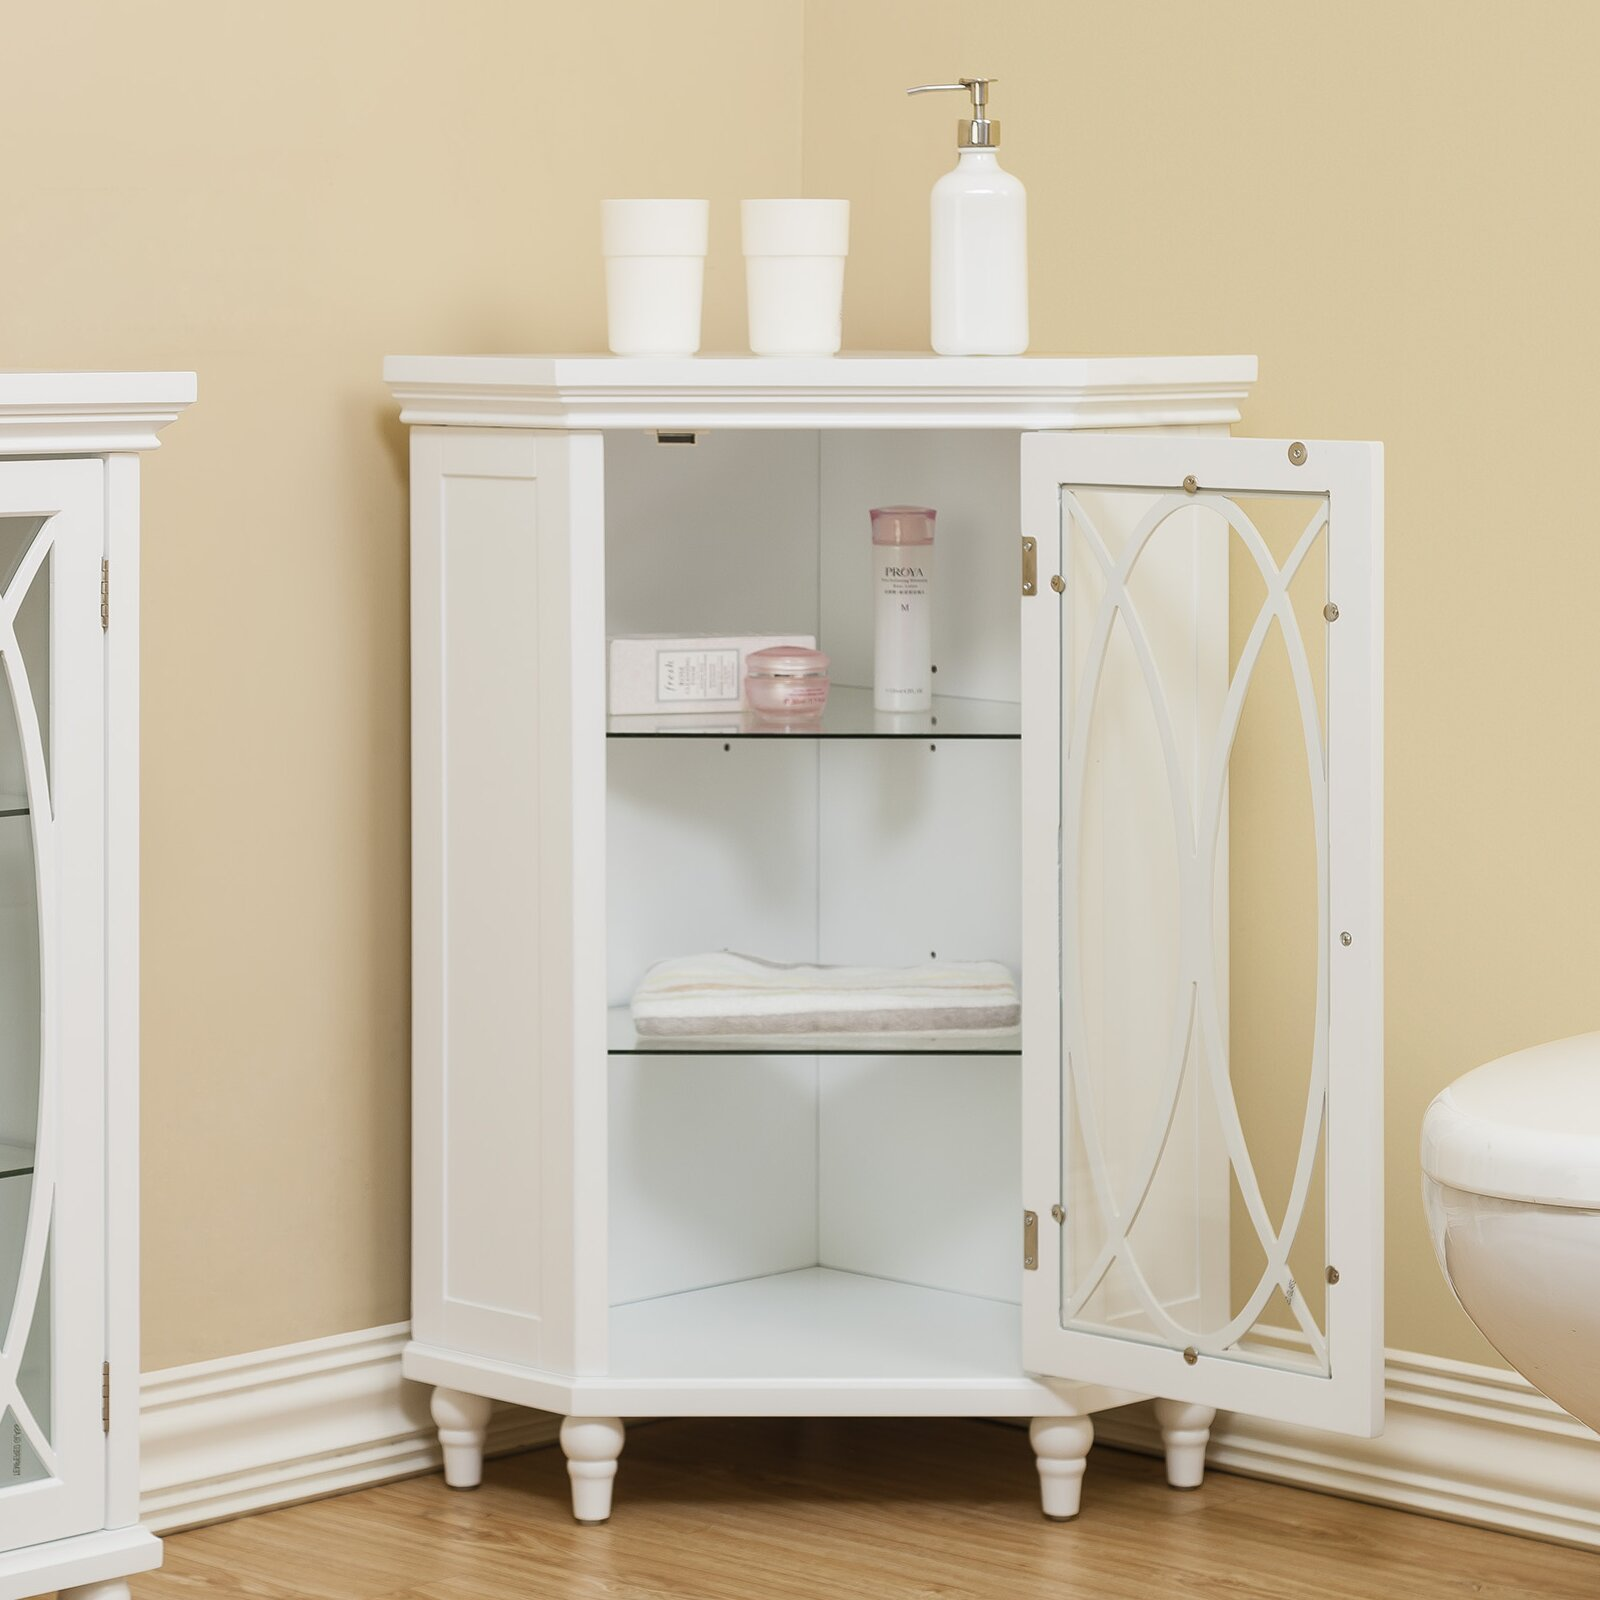 Bathroom Storage Cabinets Floor Elegant Home Fashions Bourbon Corner Floor 2475 W X 245 H